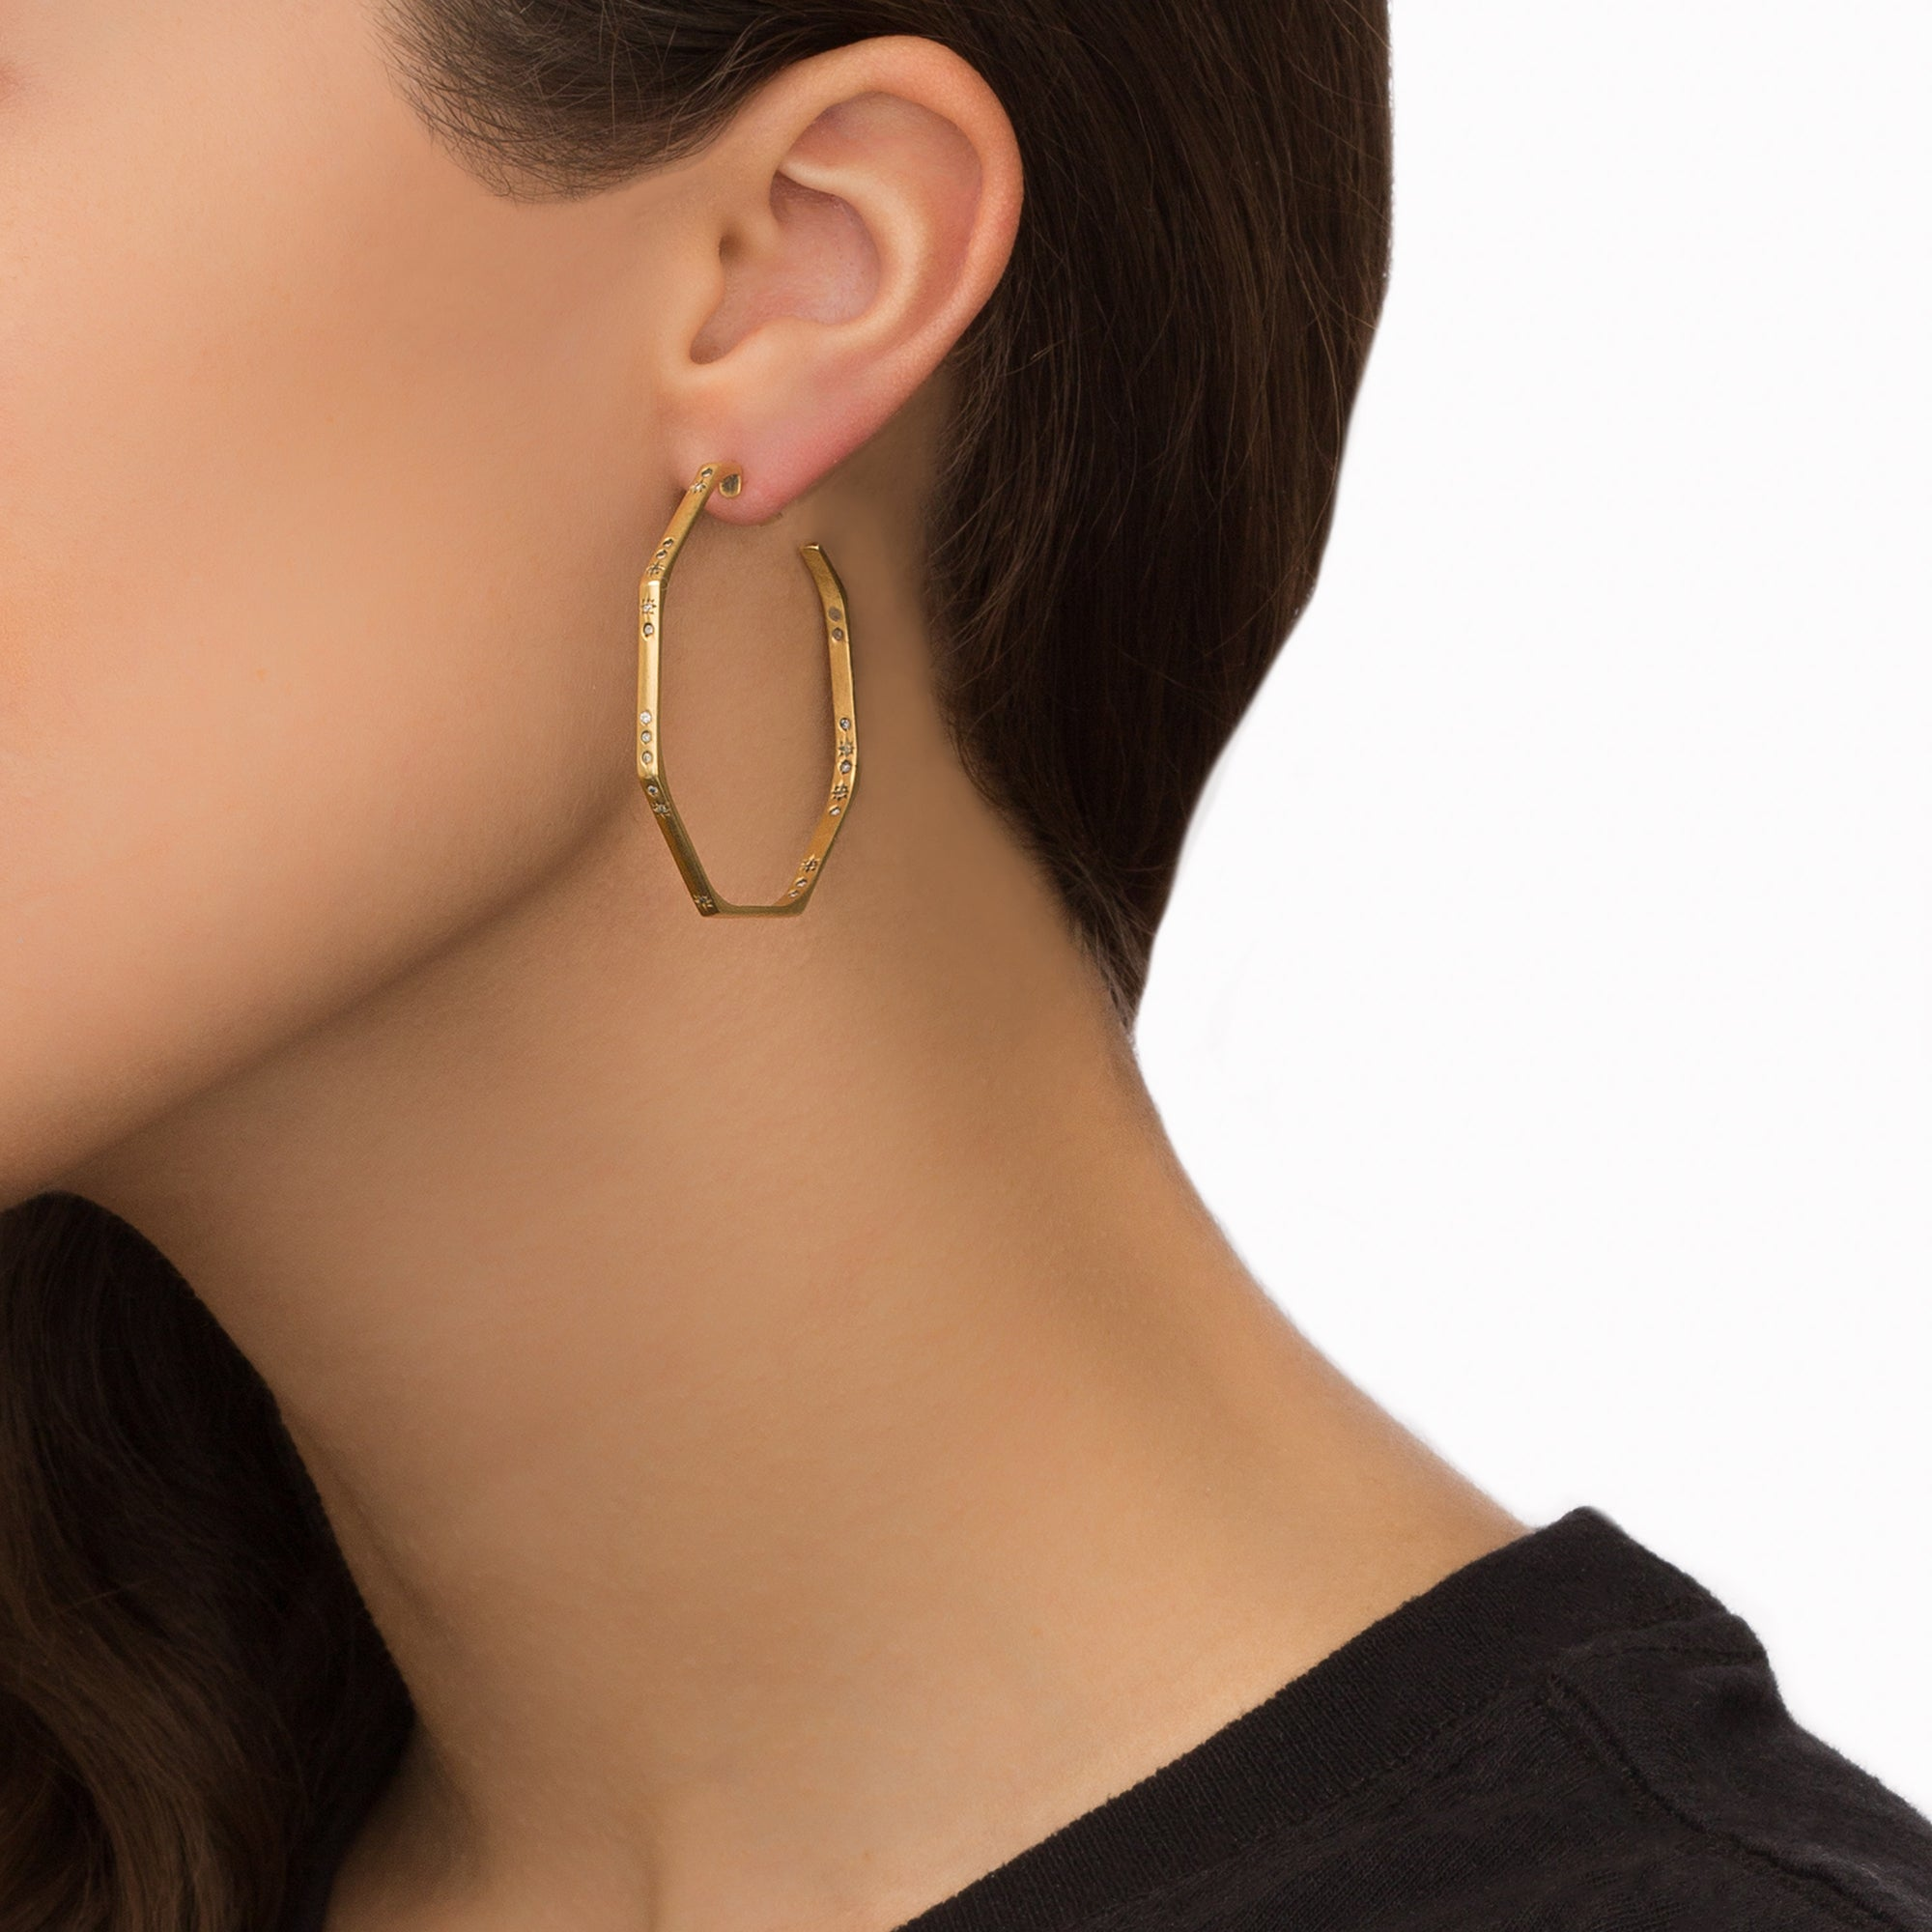 Octogon Hoop Earrings I - Suel - Earrings | Broken English Jewelry